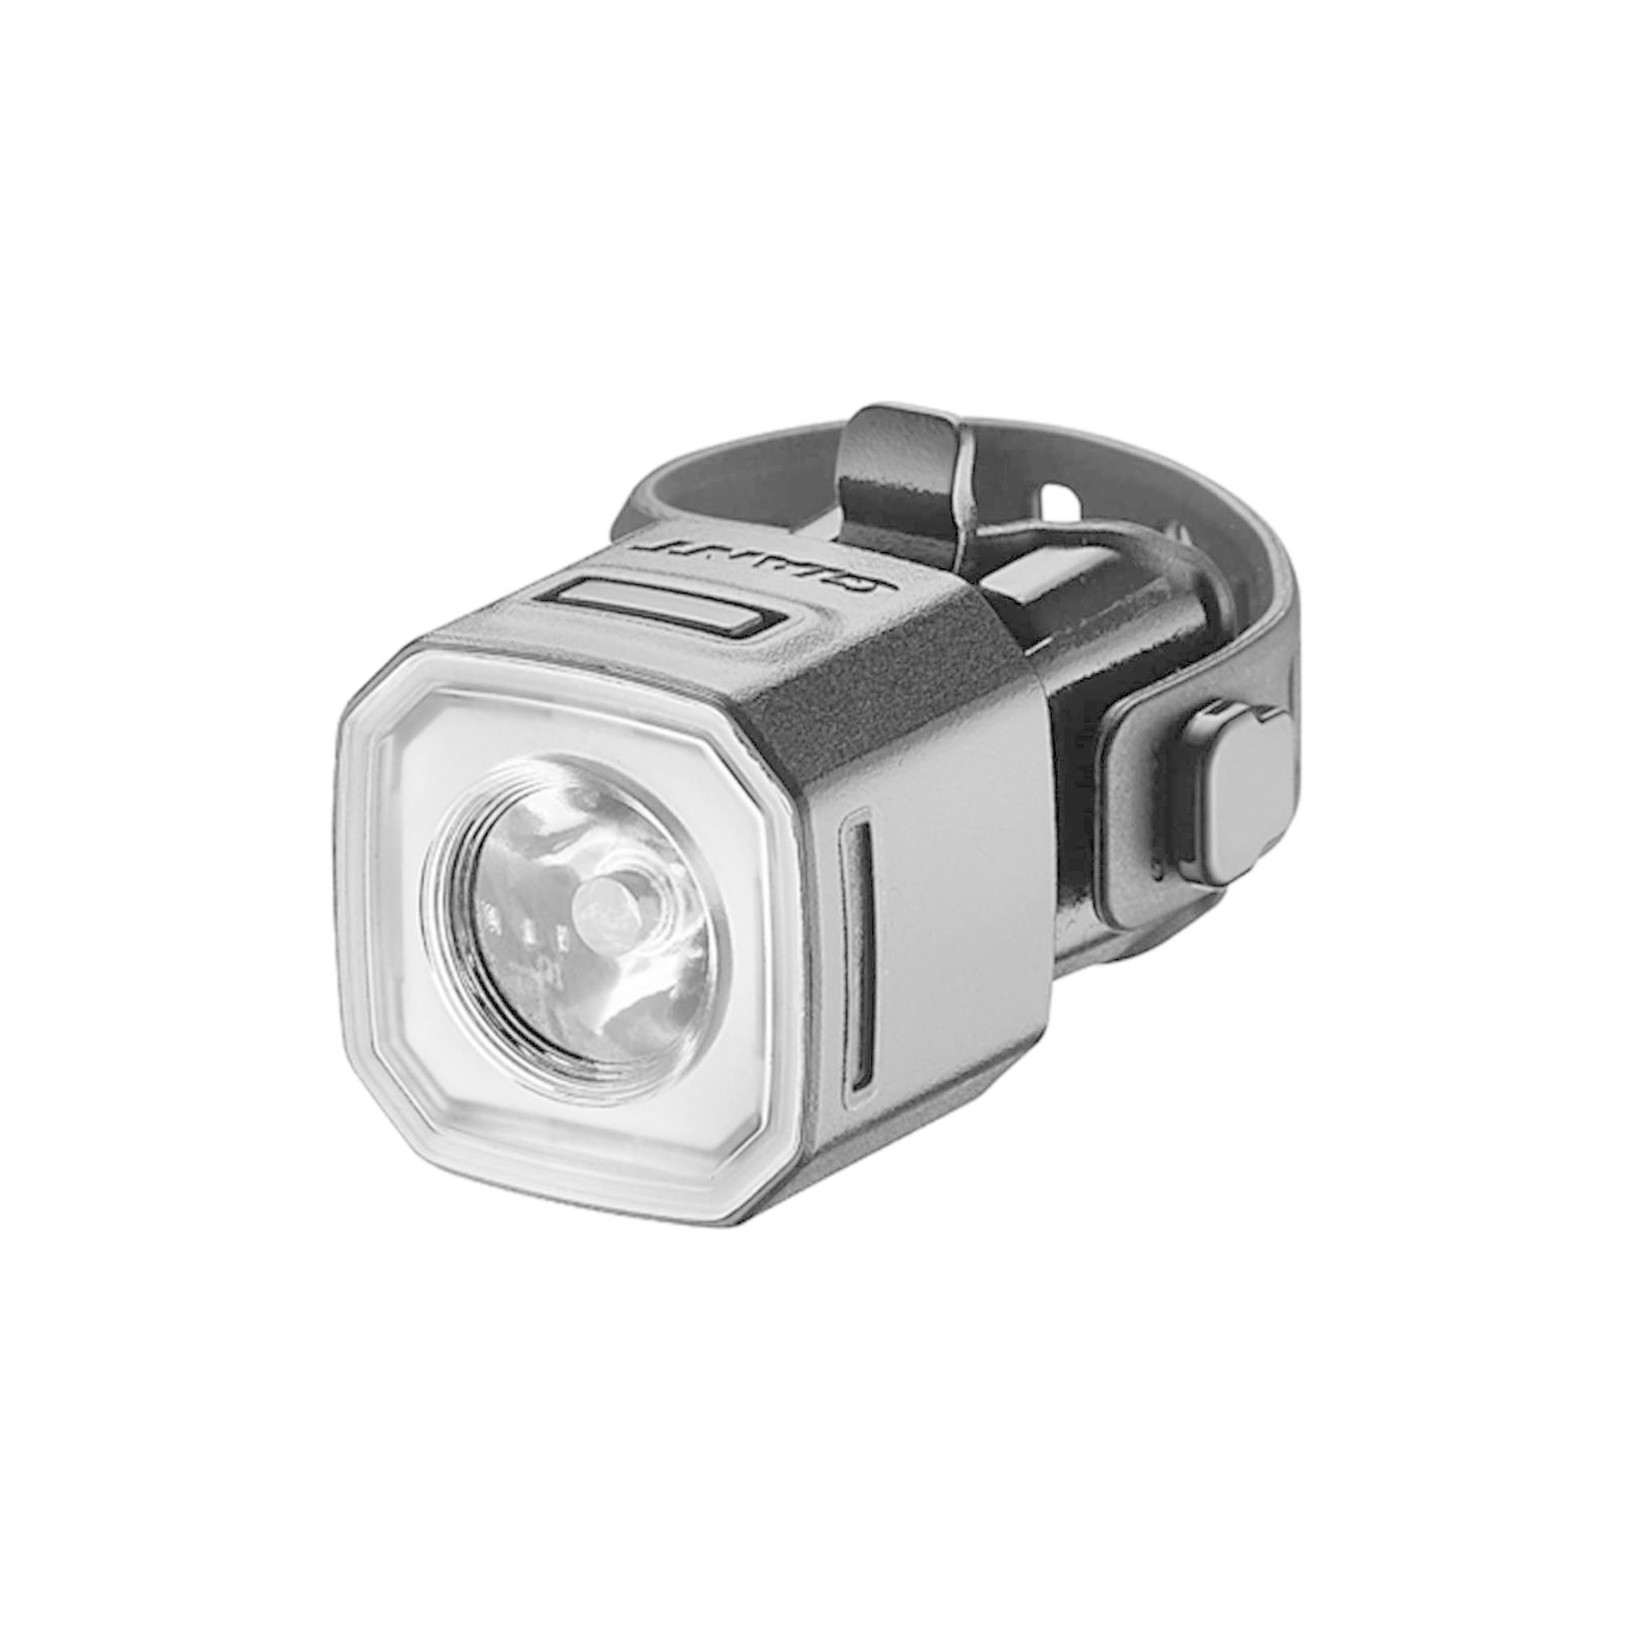 GIANT Giant Recon HL100 Front Light